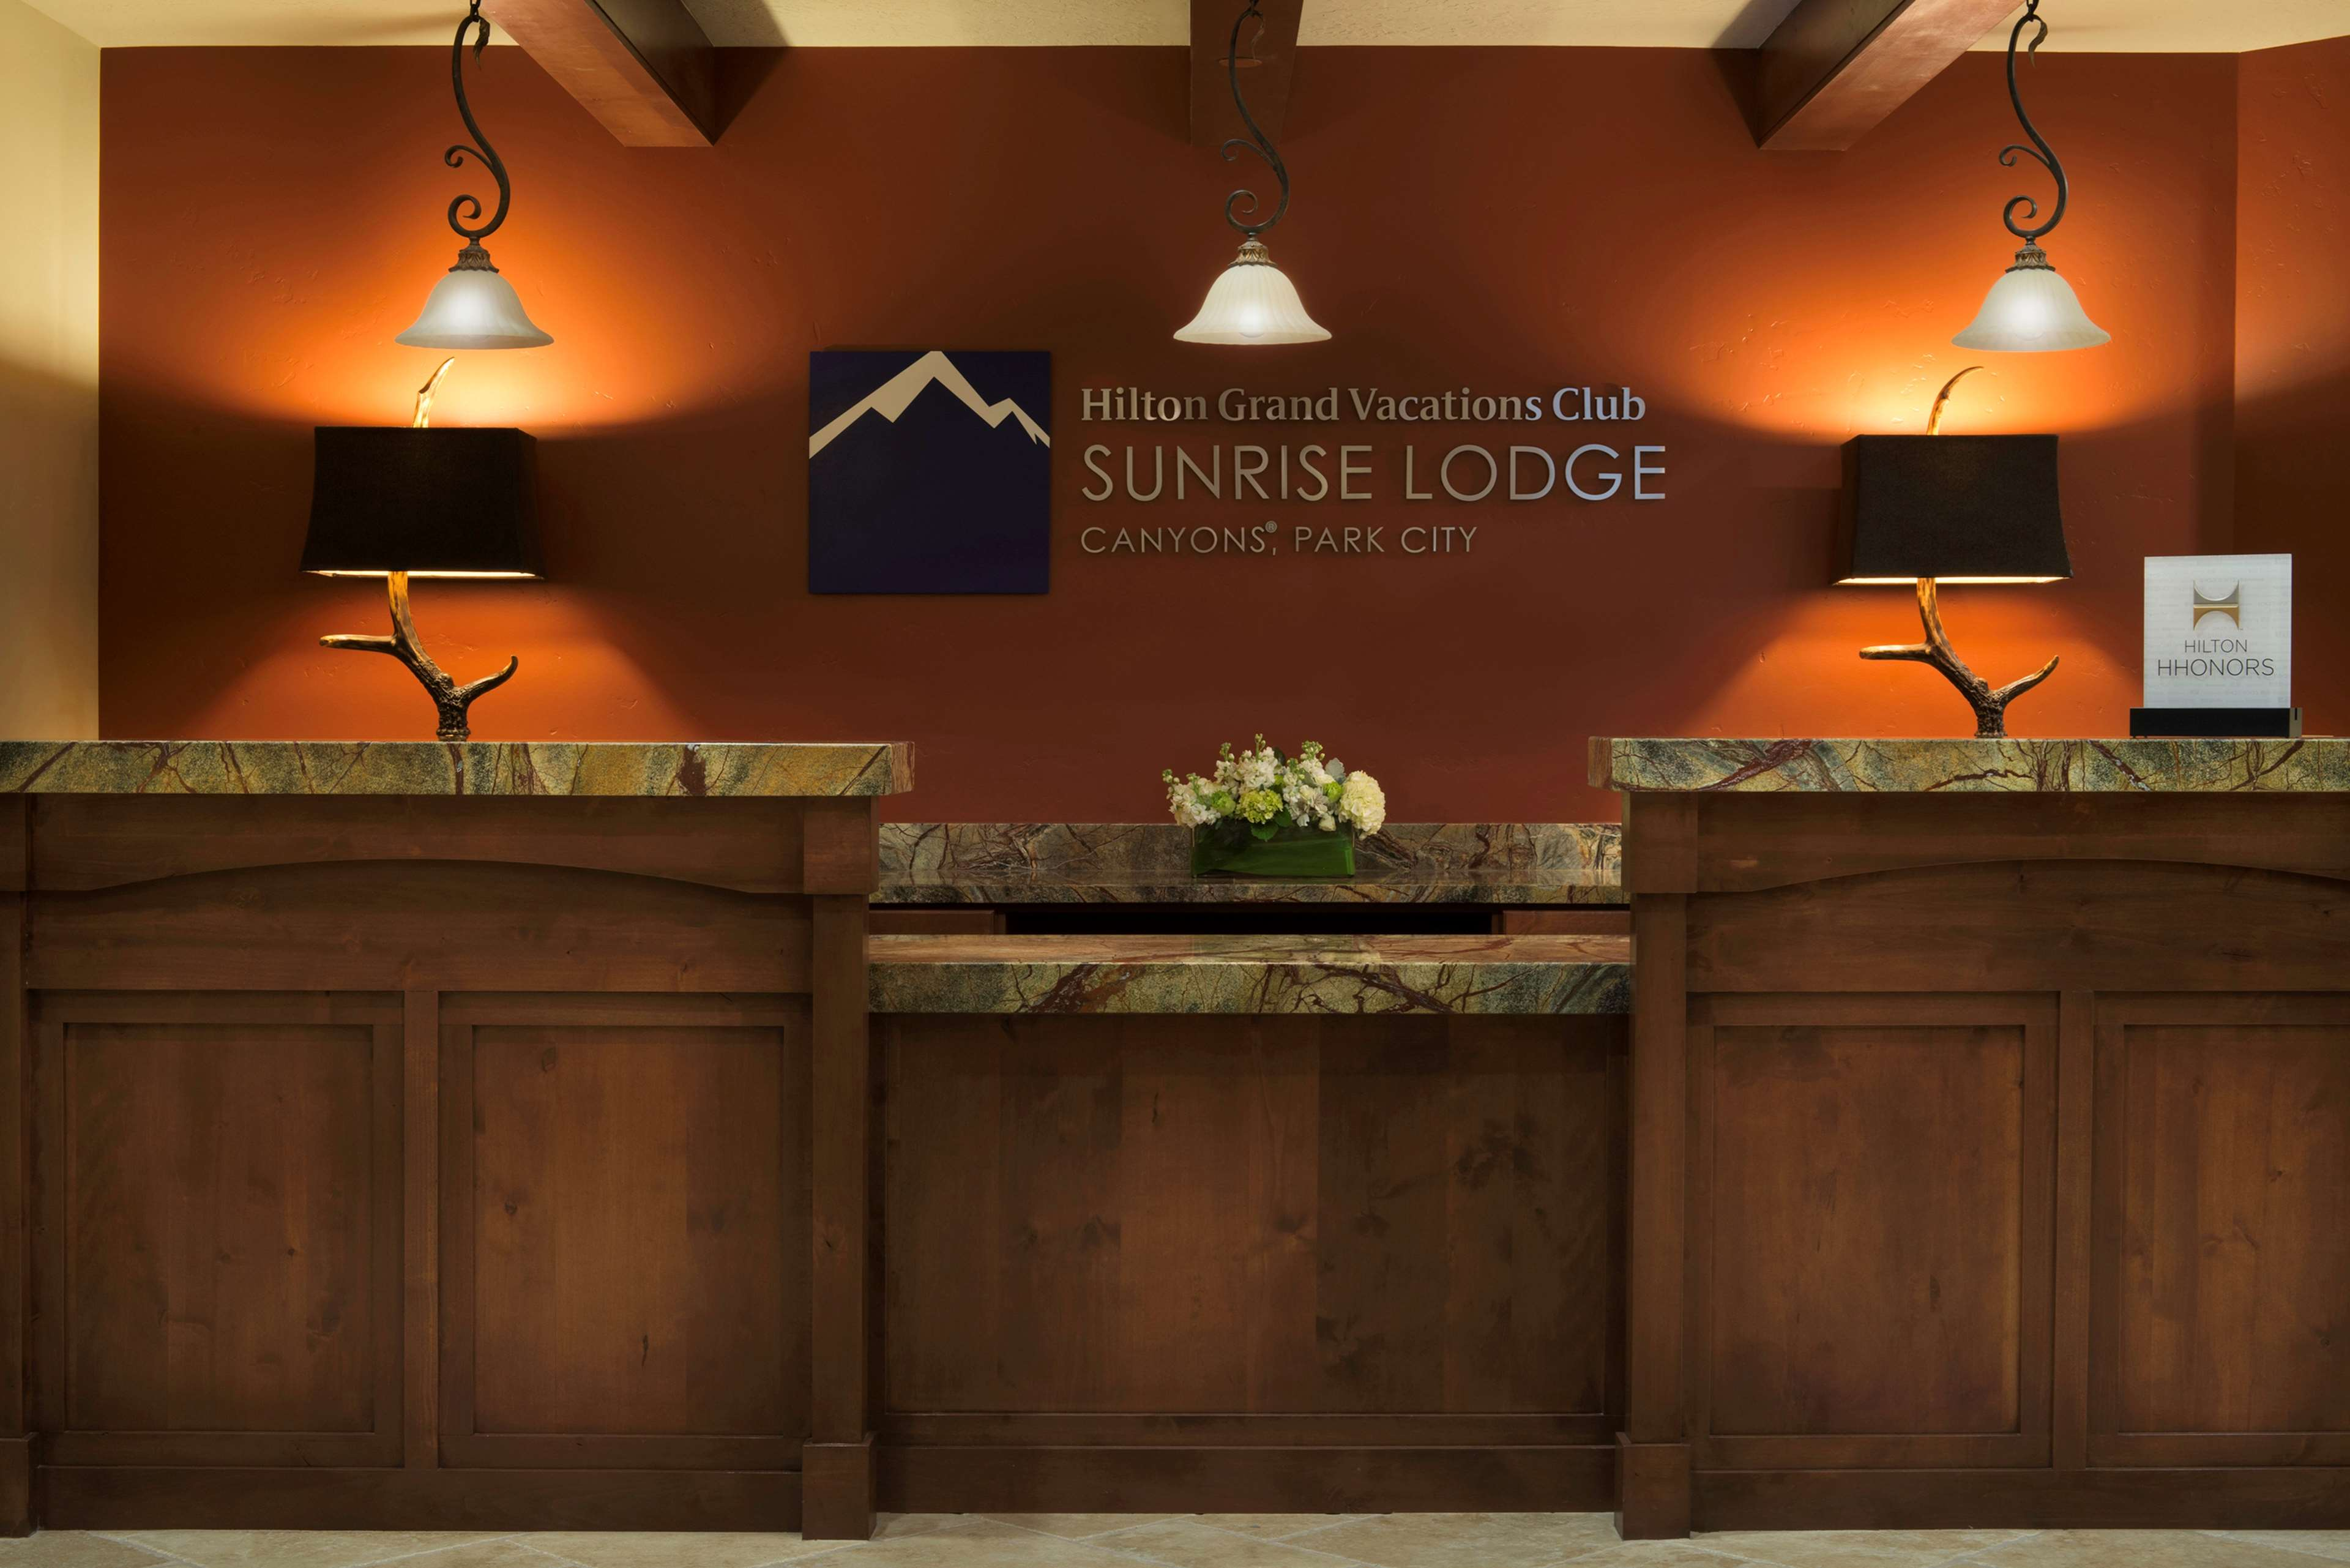 Sunrise Lodge by Hilton Grand Vacations image 6